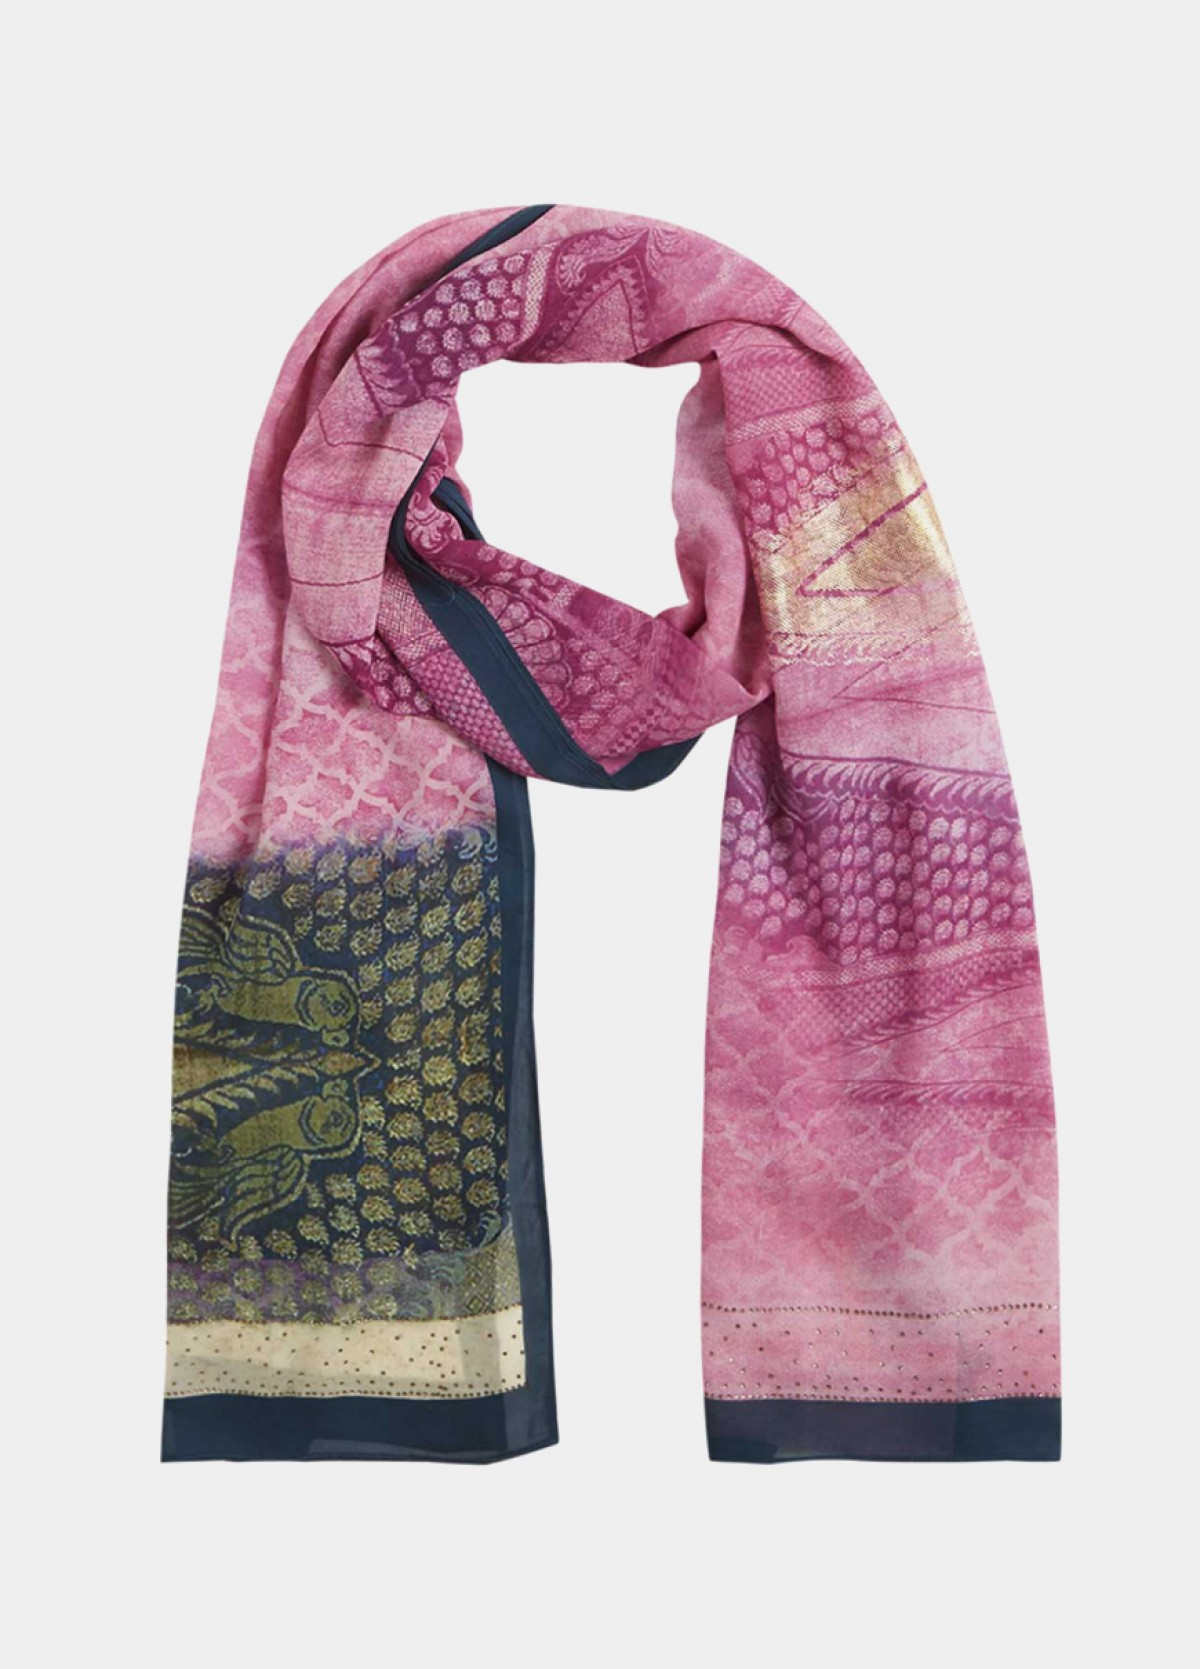 The Pink Orchid Georgette Stole